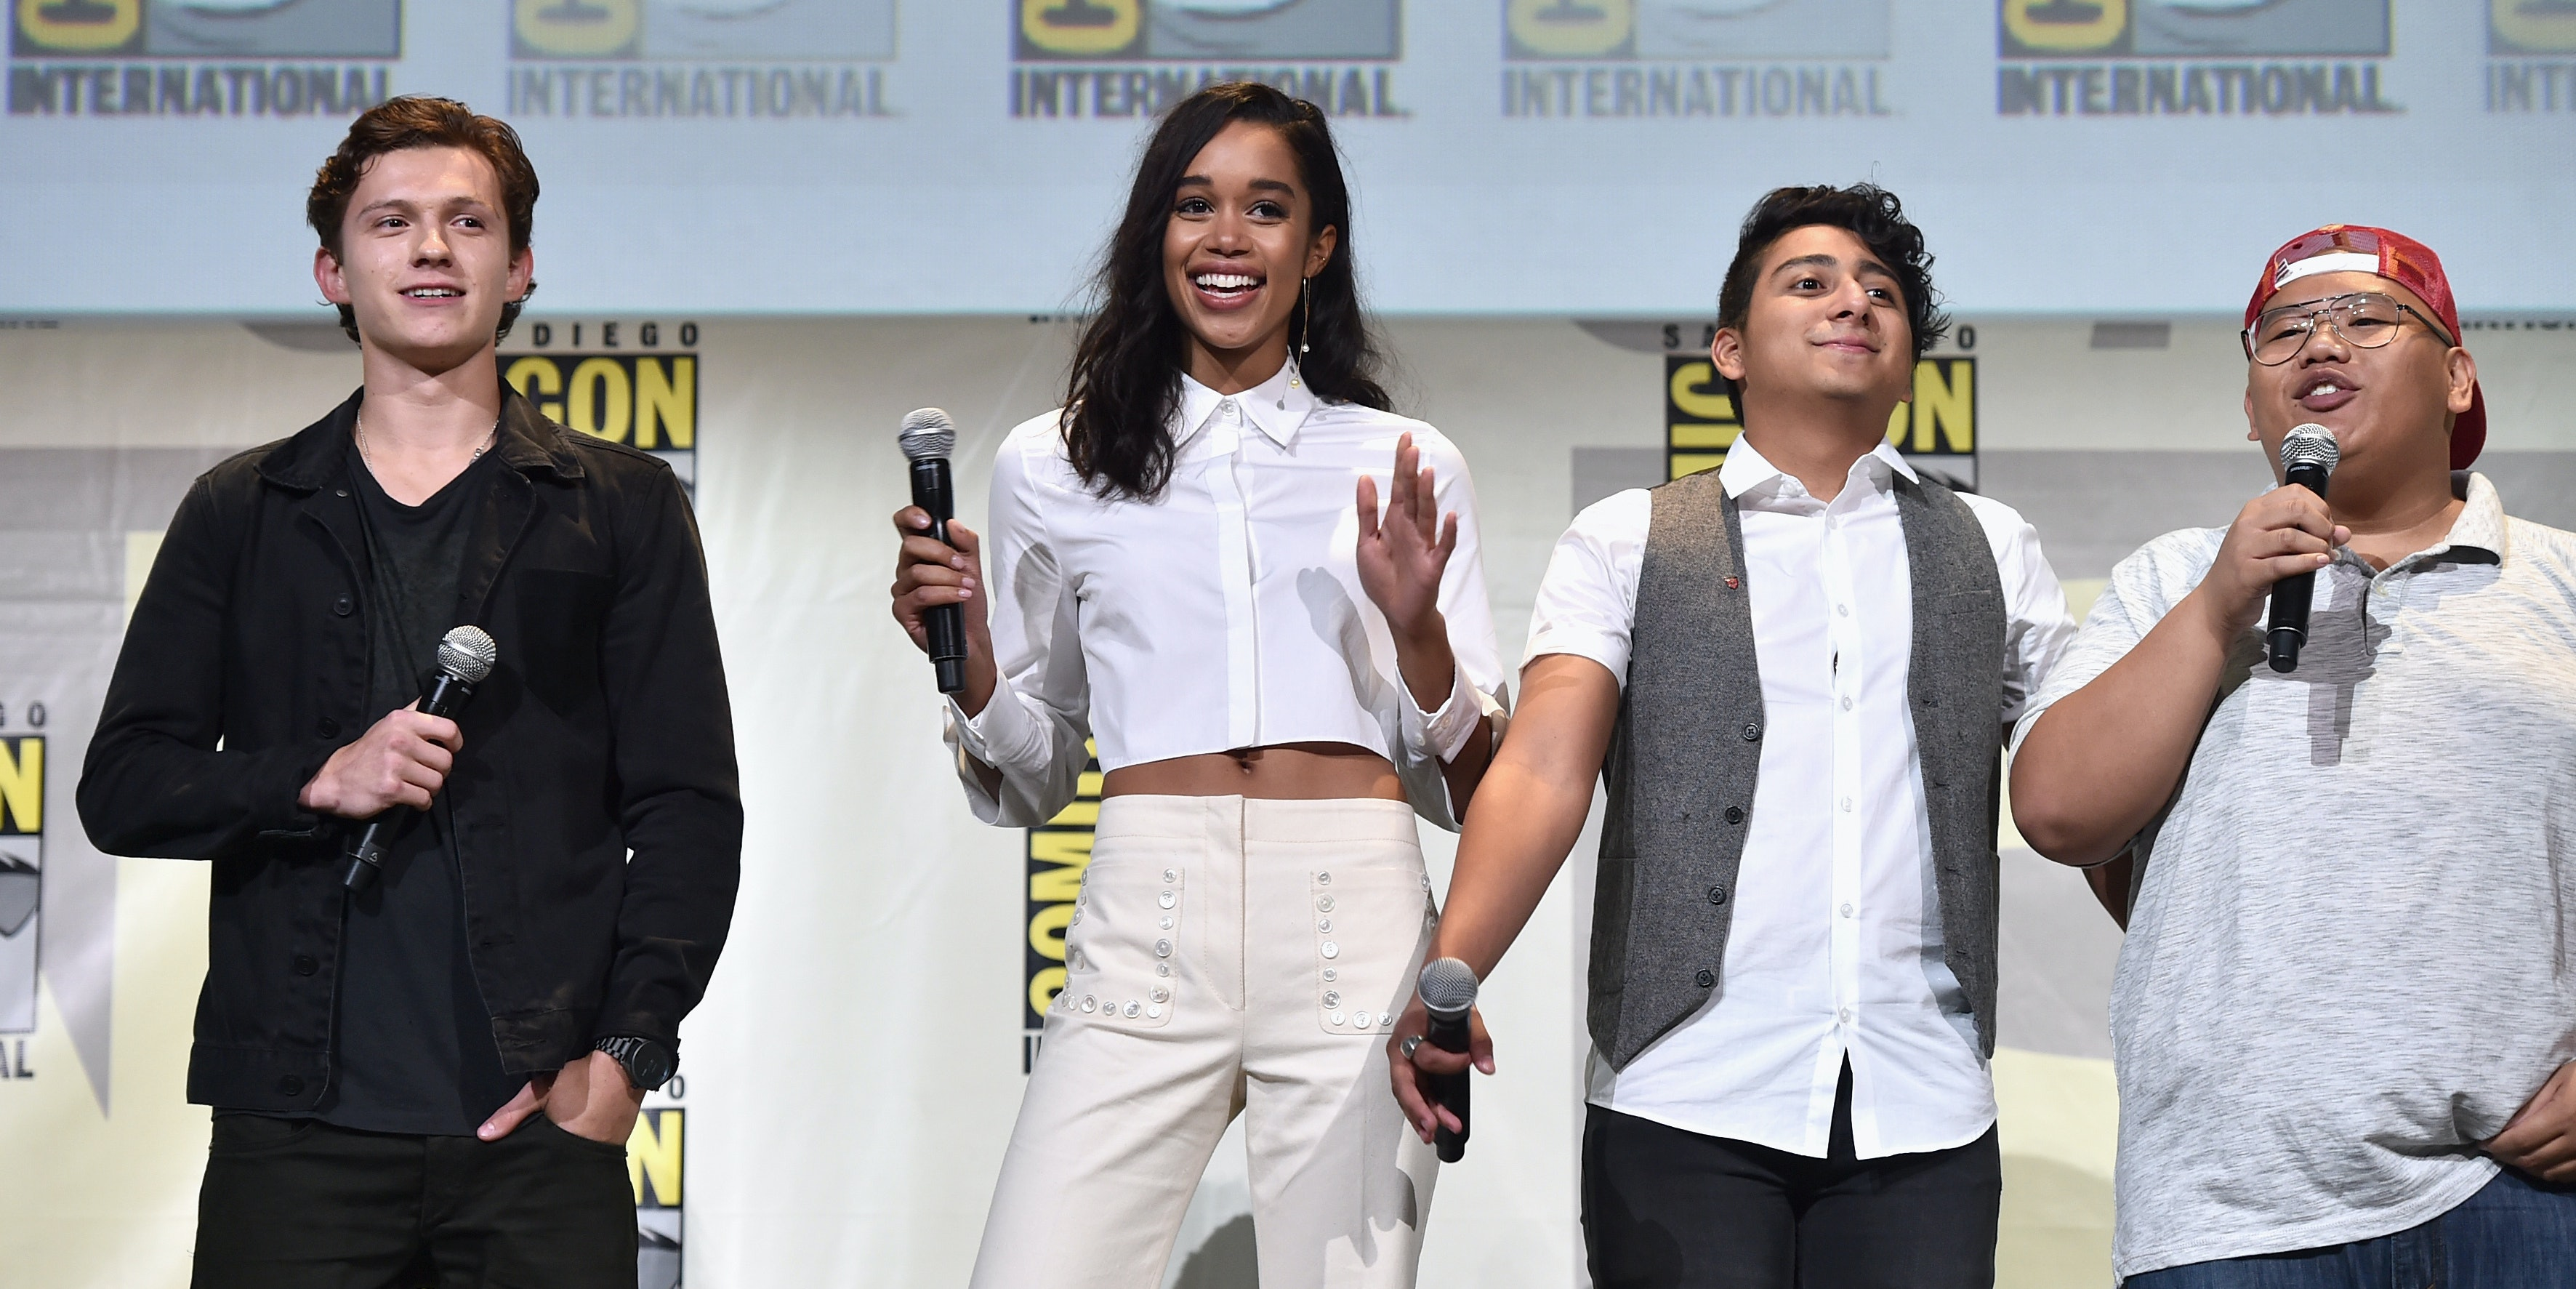 "SAN DIEGO, CA - JULY 23:  Actors Tom Holland, Laura Harrier, Tony Revolori, and Jacob Batalon from Marvel Studios' 'Spider-Man: Homecoming"" attend the San Diego Comic-Con International 2016 Marvel Panel in Hall H on July 23, 2016 in San Diego, California. ©Marvel Studios 2016. ©2016 CTMG. All Rights Reserved.  (Photo by Alberto E. Rodriguez/Getty Images for Disney)"